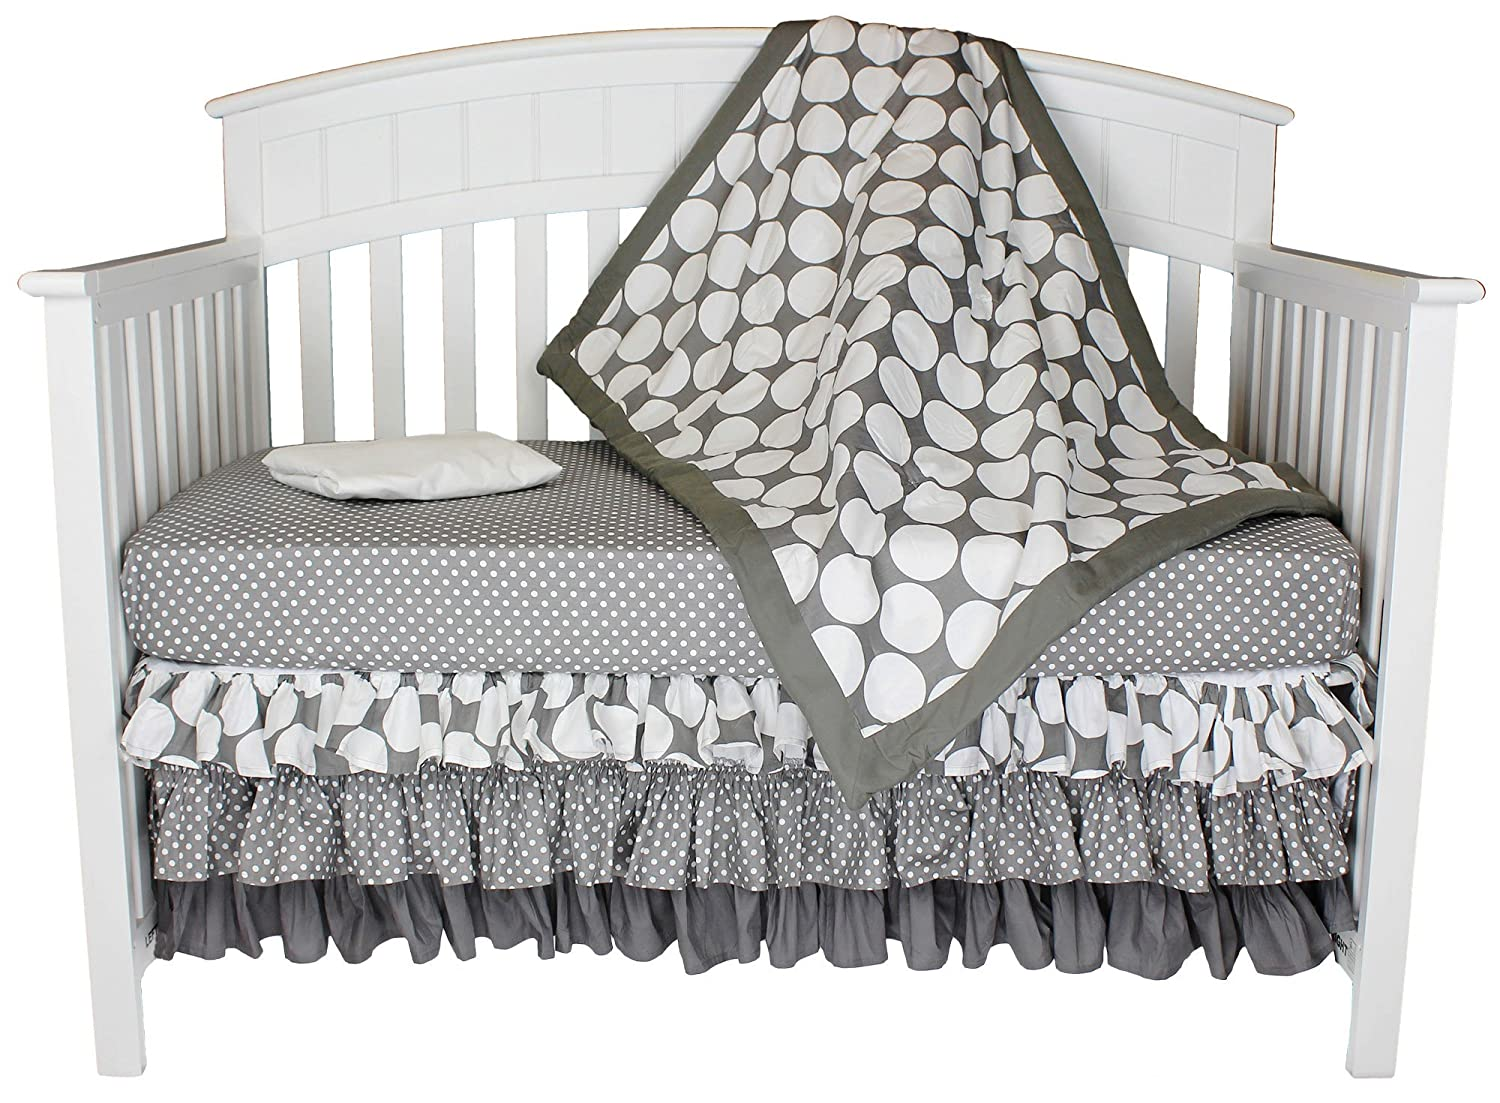 Grey With White Polka Dots 4-in-1 100% Cotton Baby Crib Bedding Set by Bacati by Bacati   B01AAX6K0K